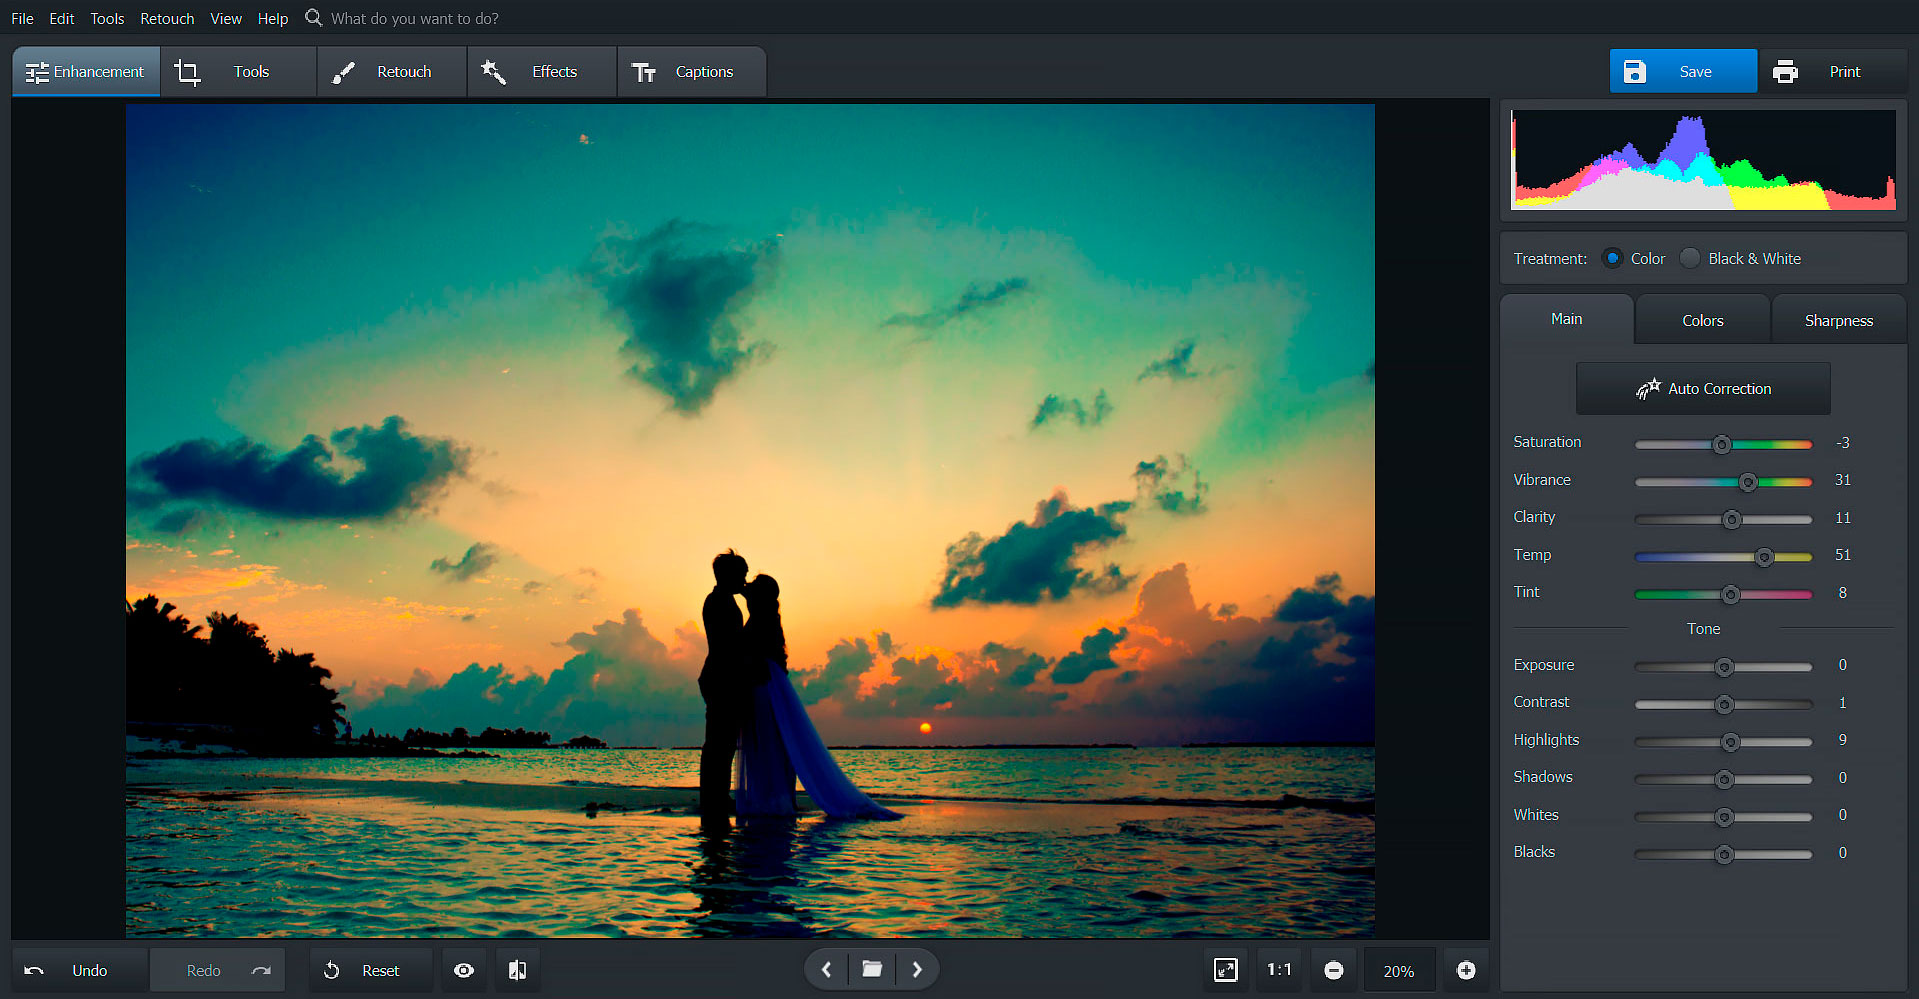 how to make an image background transparent easily